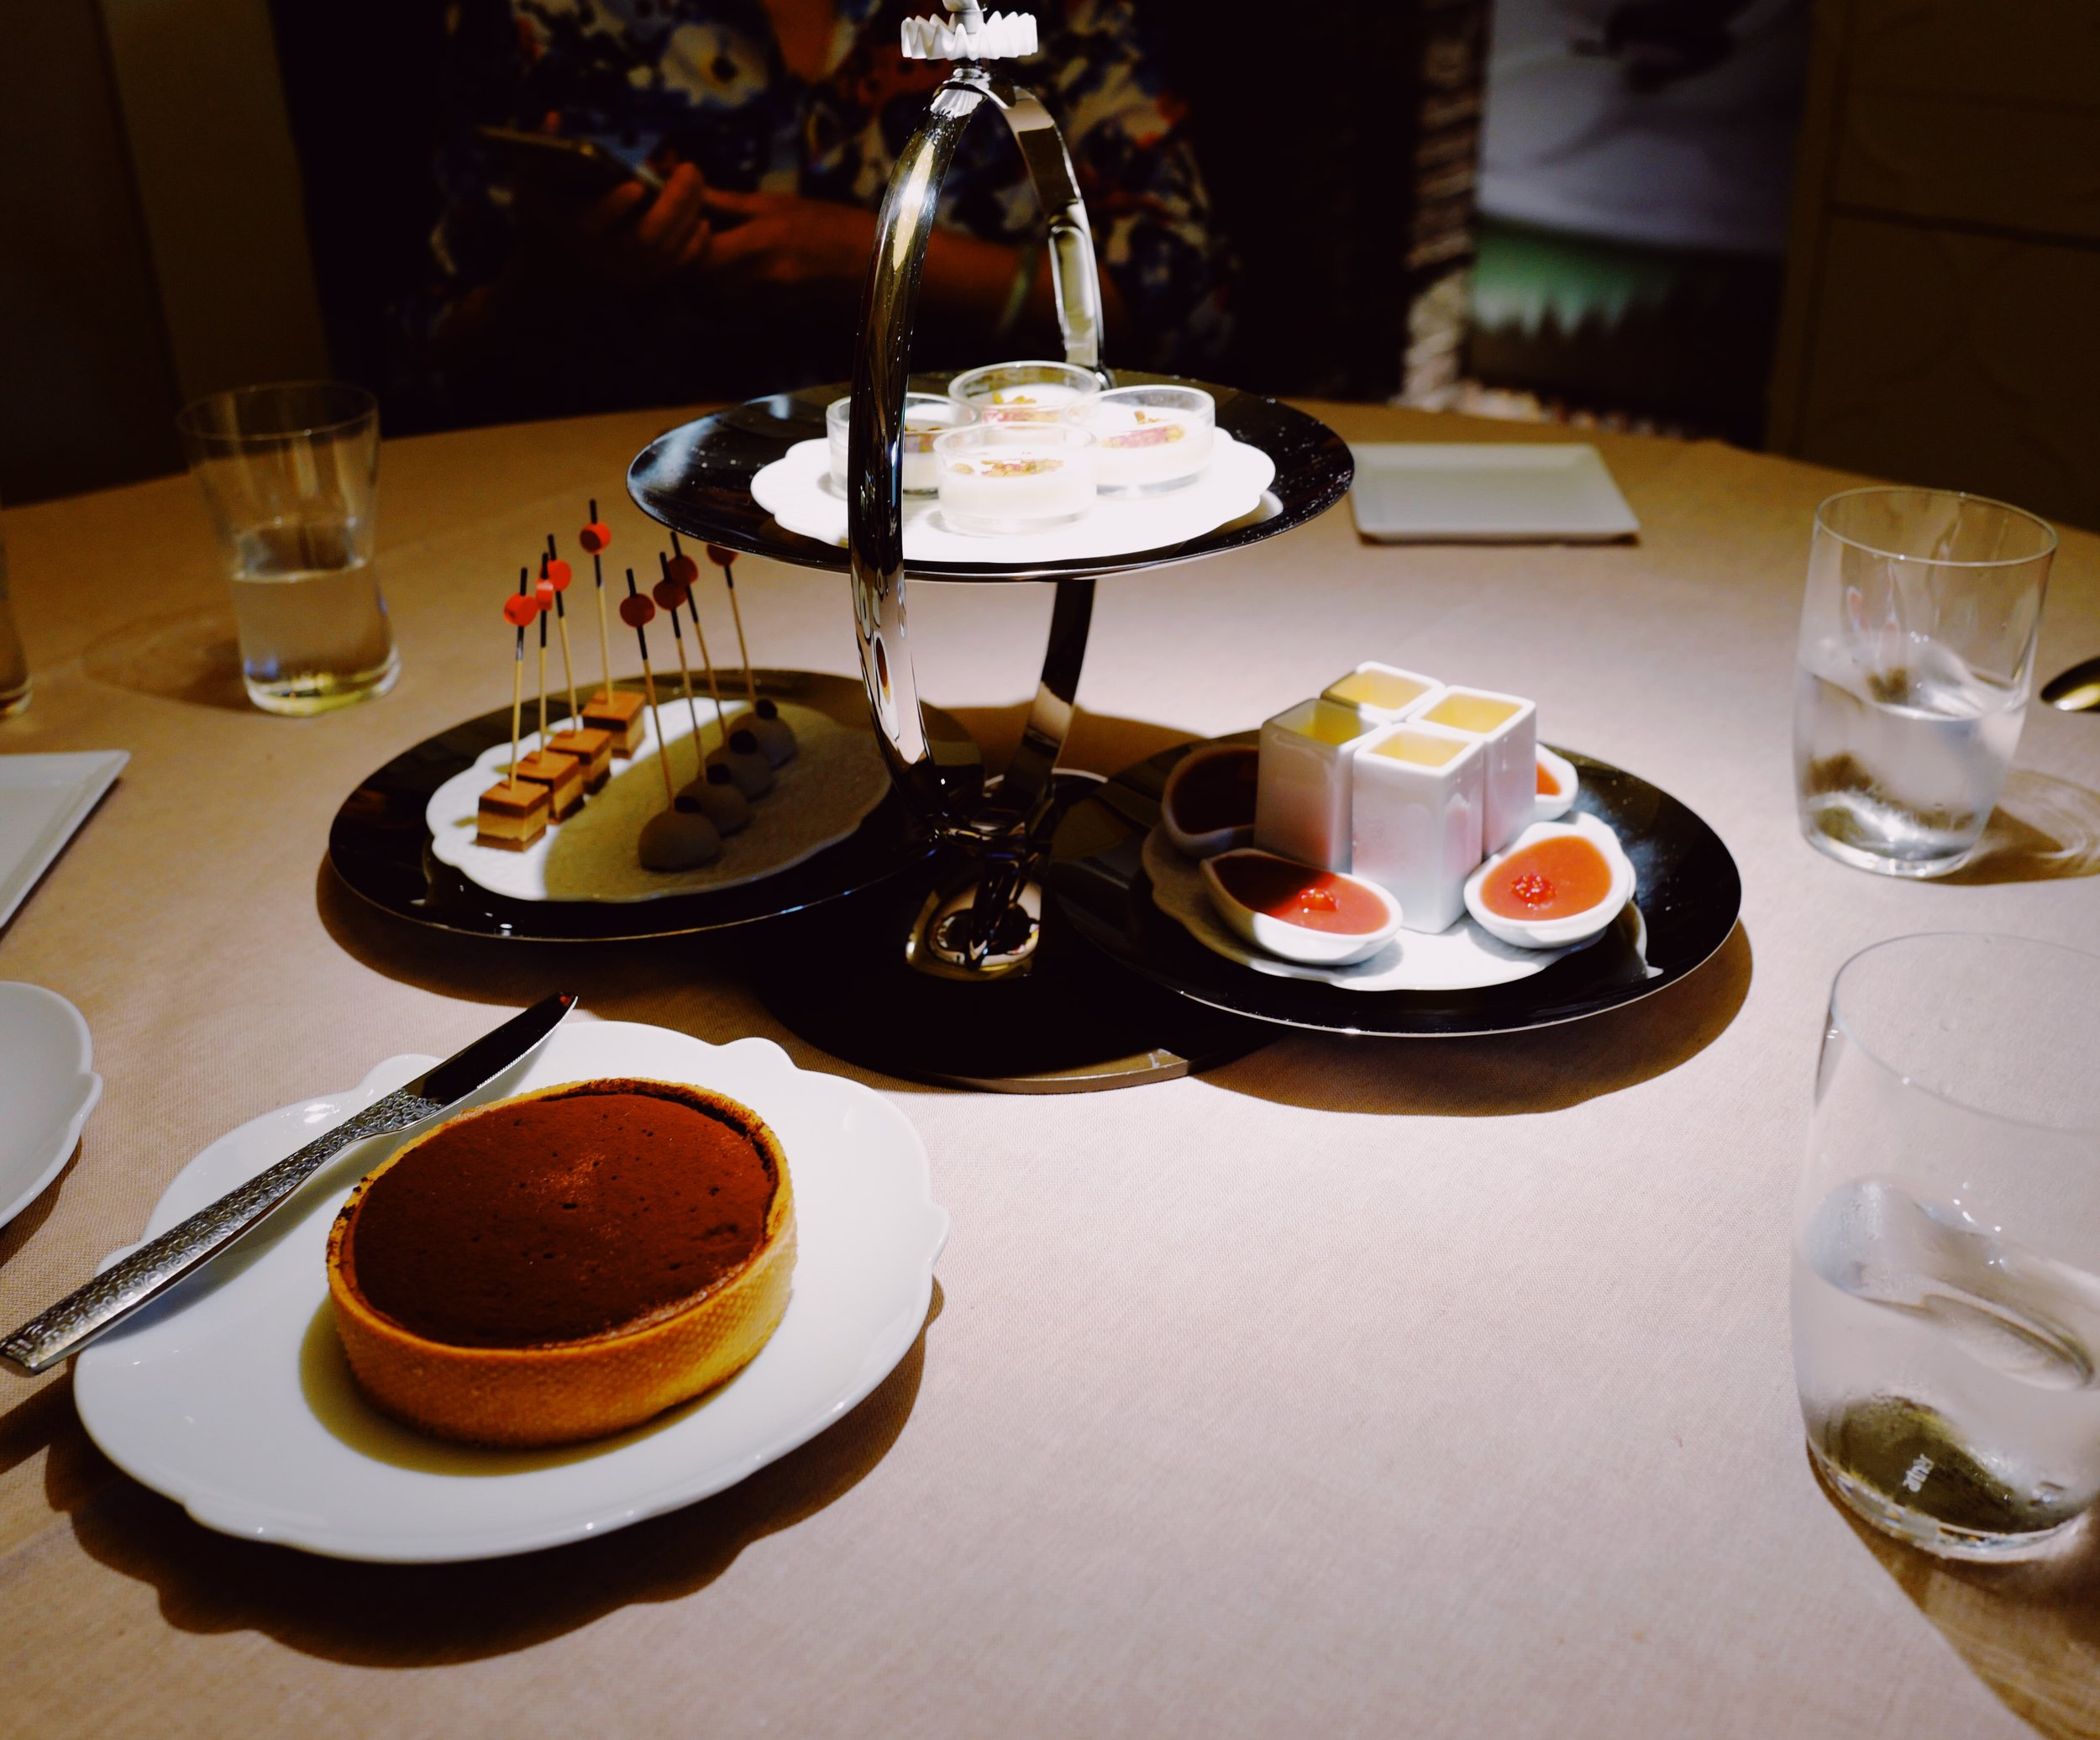 Dessert tray, yes and a whole chocolate cake…